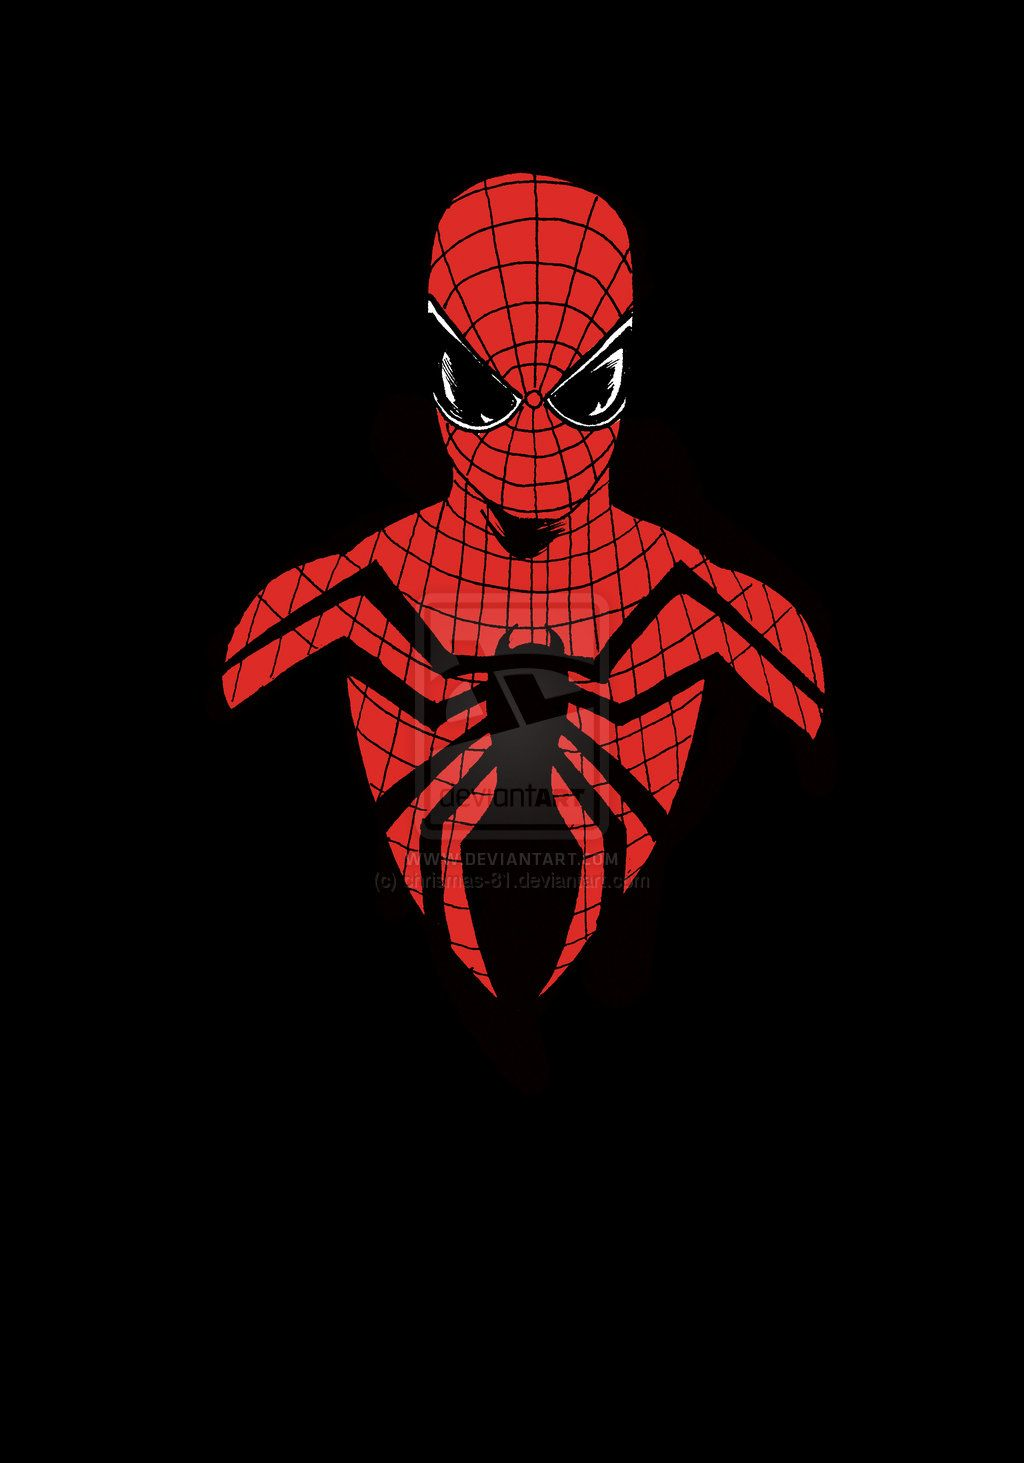 Spiderman Wallpaper Android Posted By Ethan Johnson